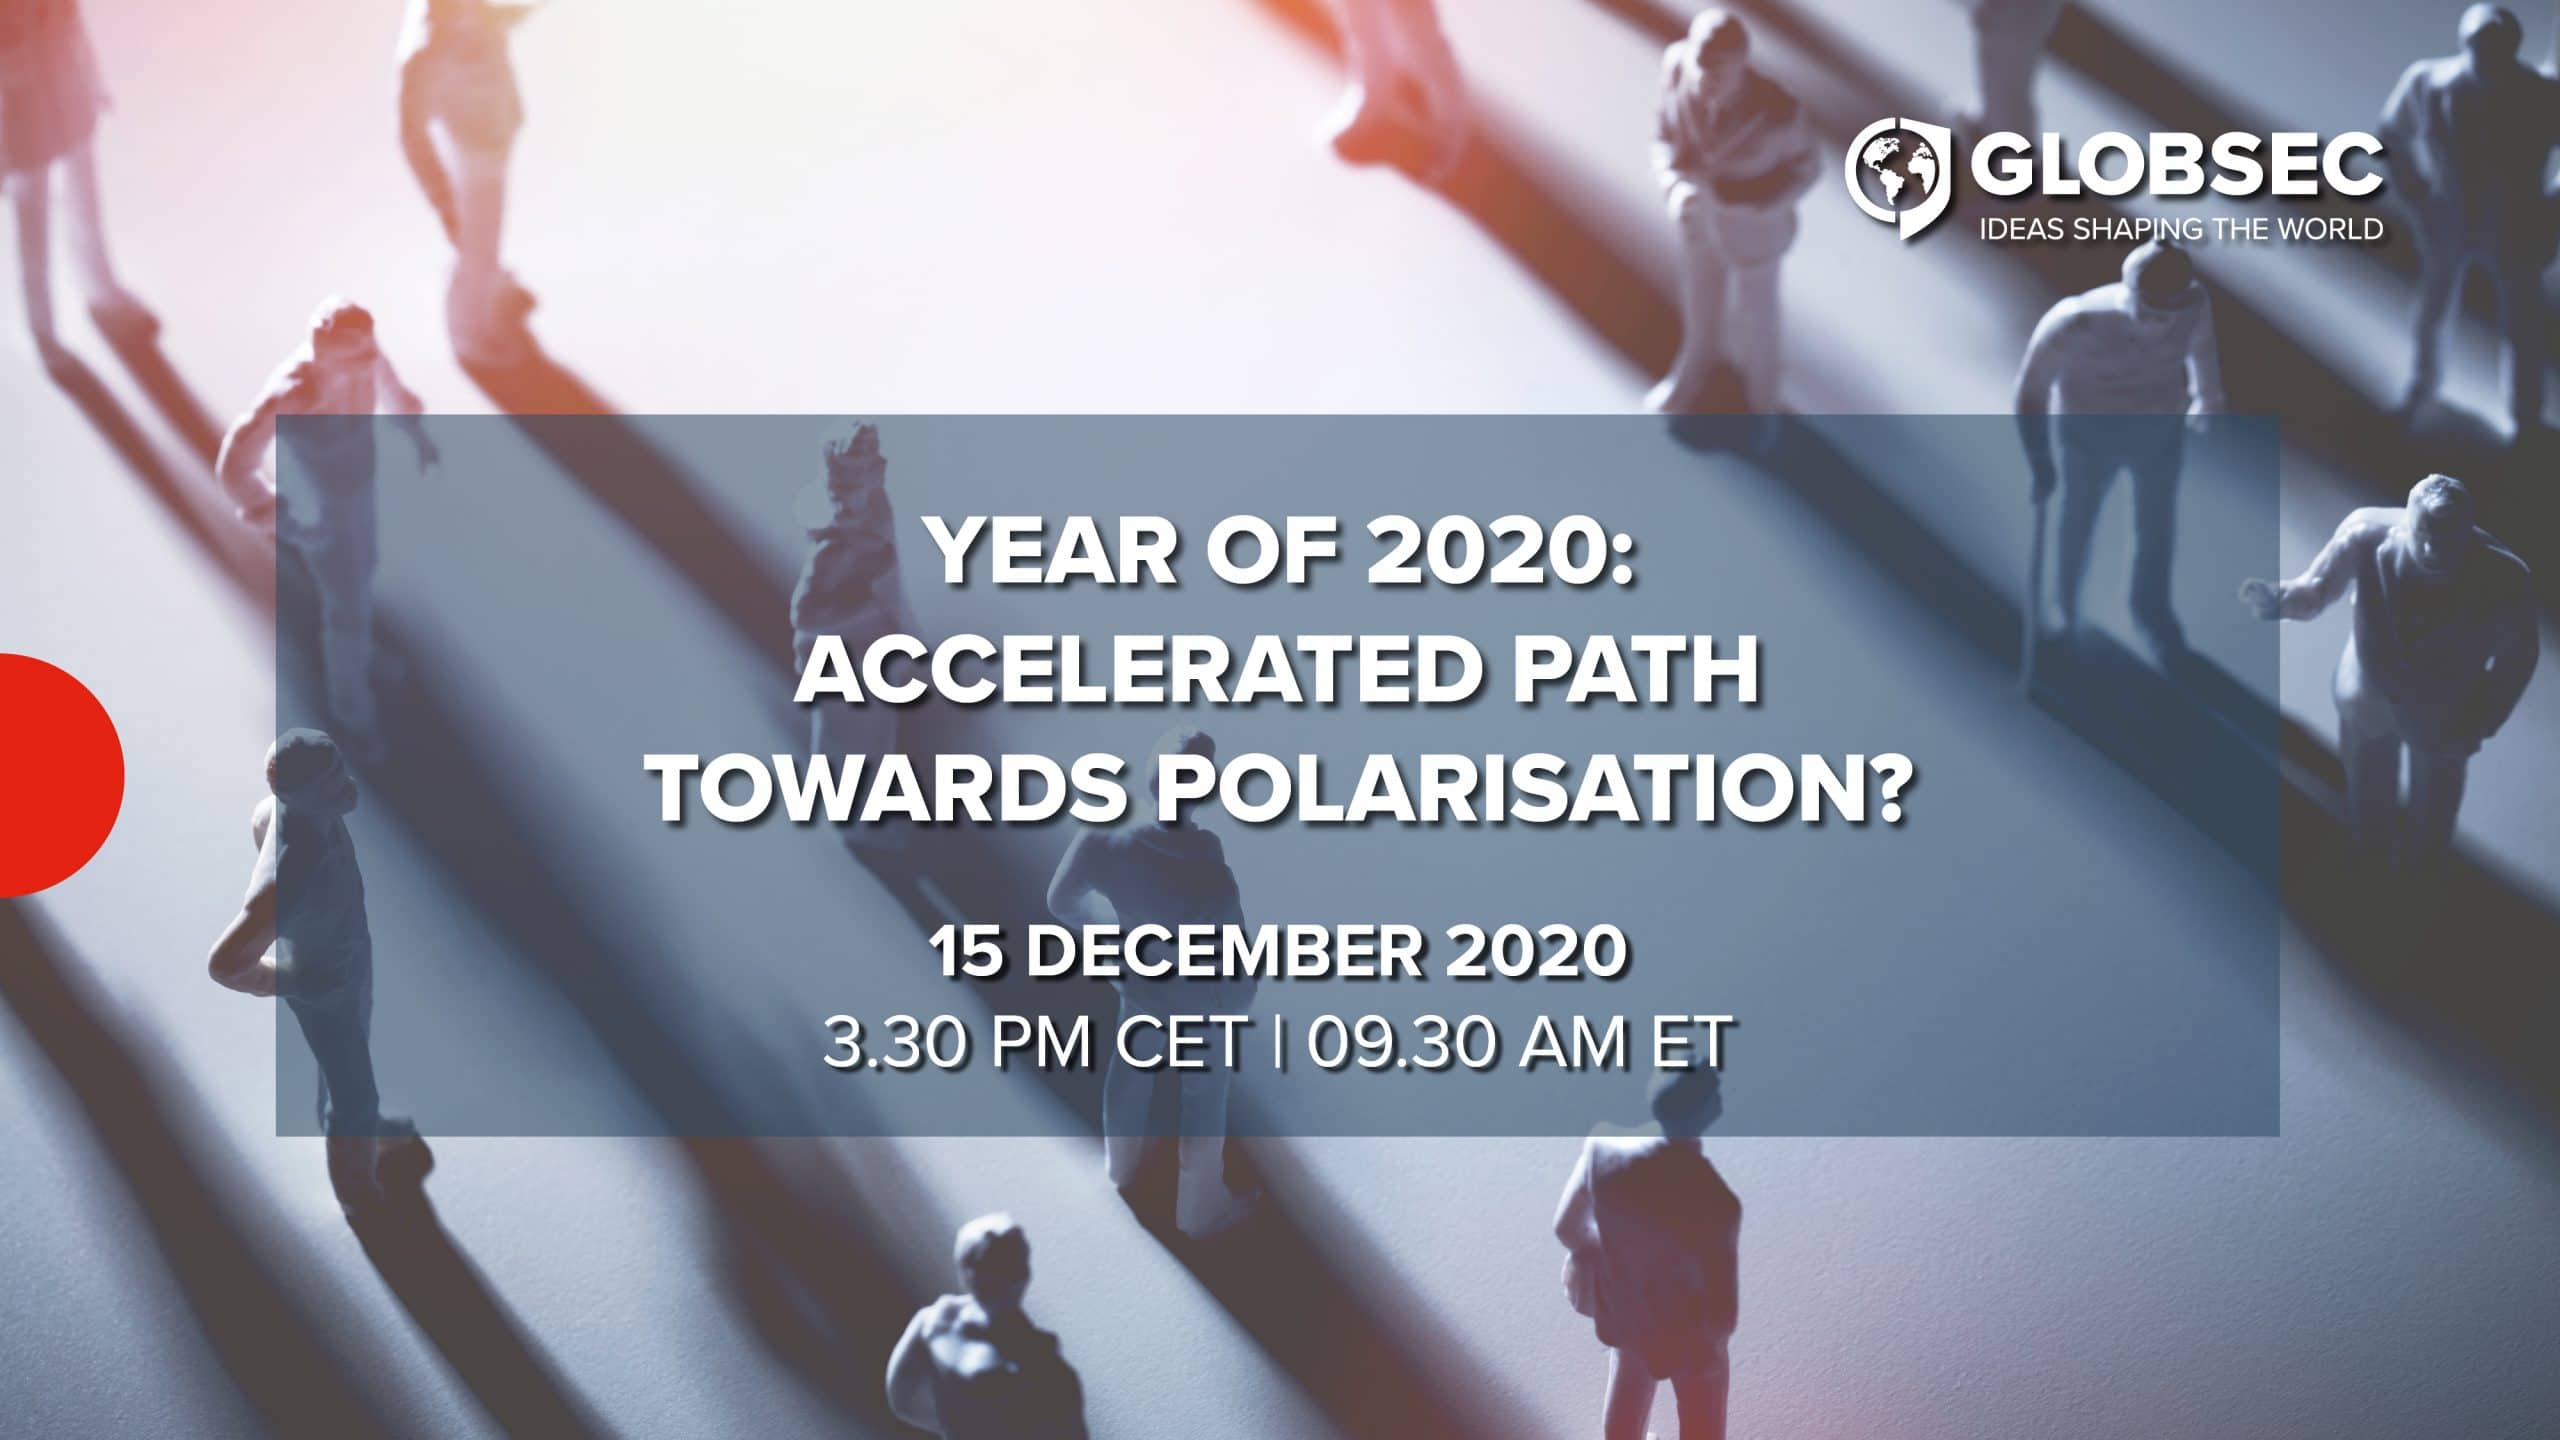 15.12.2020 - Year of 2020: Accelerated Path Towards Polarisation?